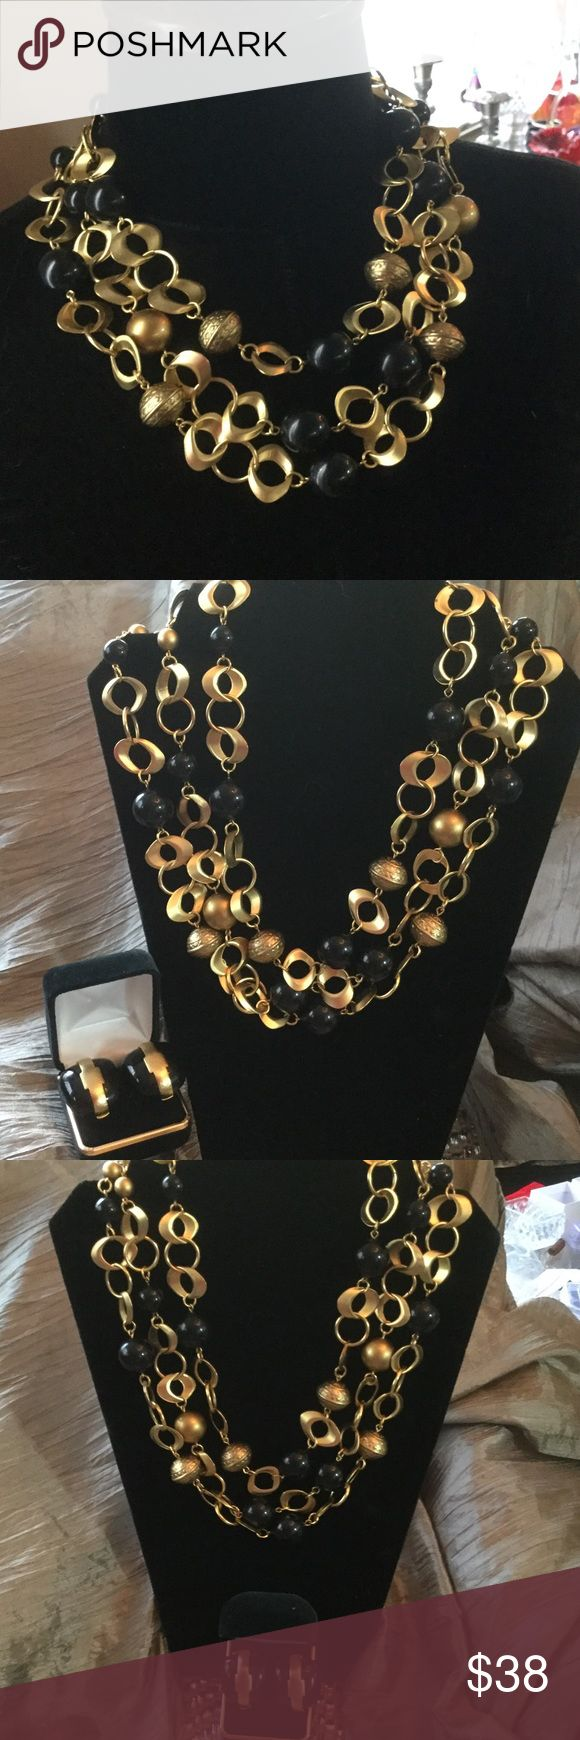 Vintage Necklace & 3 Free pairs of Earrings Super stunning and oh so expensive looking !  Beautiful rich black & gold tones compliment so many looks ! Triple strand necklace from Hi end estate and 2 of the earrings are comfy clips, the pearl one is pierced.  Upper crust Elegance ! Estate Jewelry